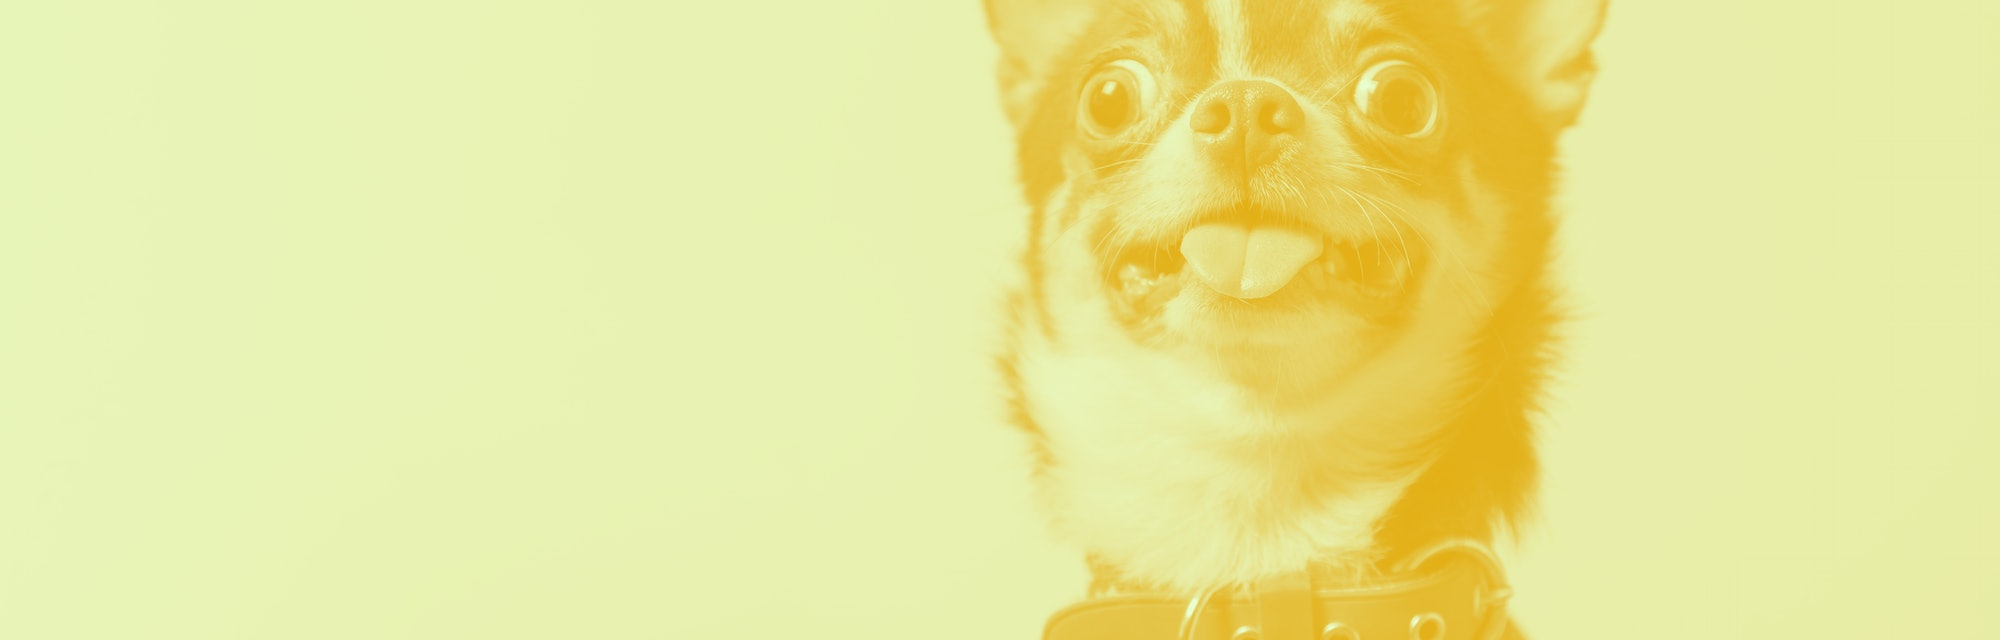 Cute brown mexican chihuahua dog with tongue out isolated on pink background. Dog looking to camera. Red collar. Copy Space